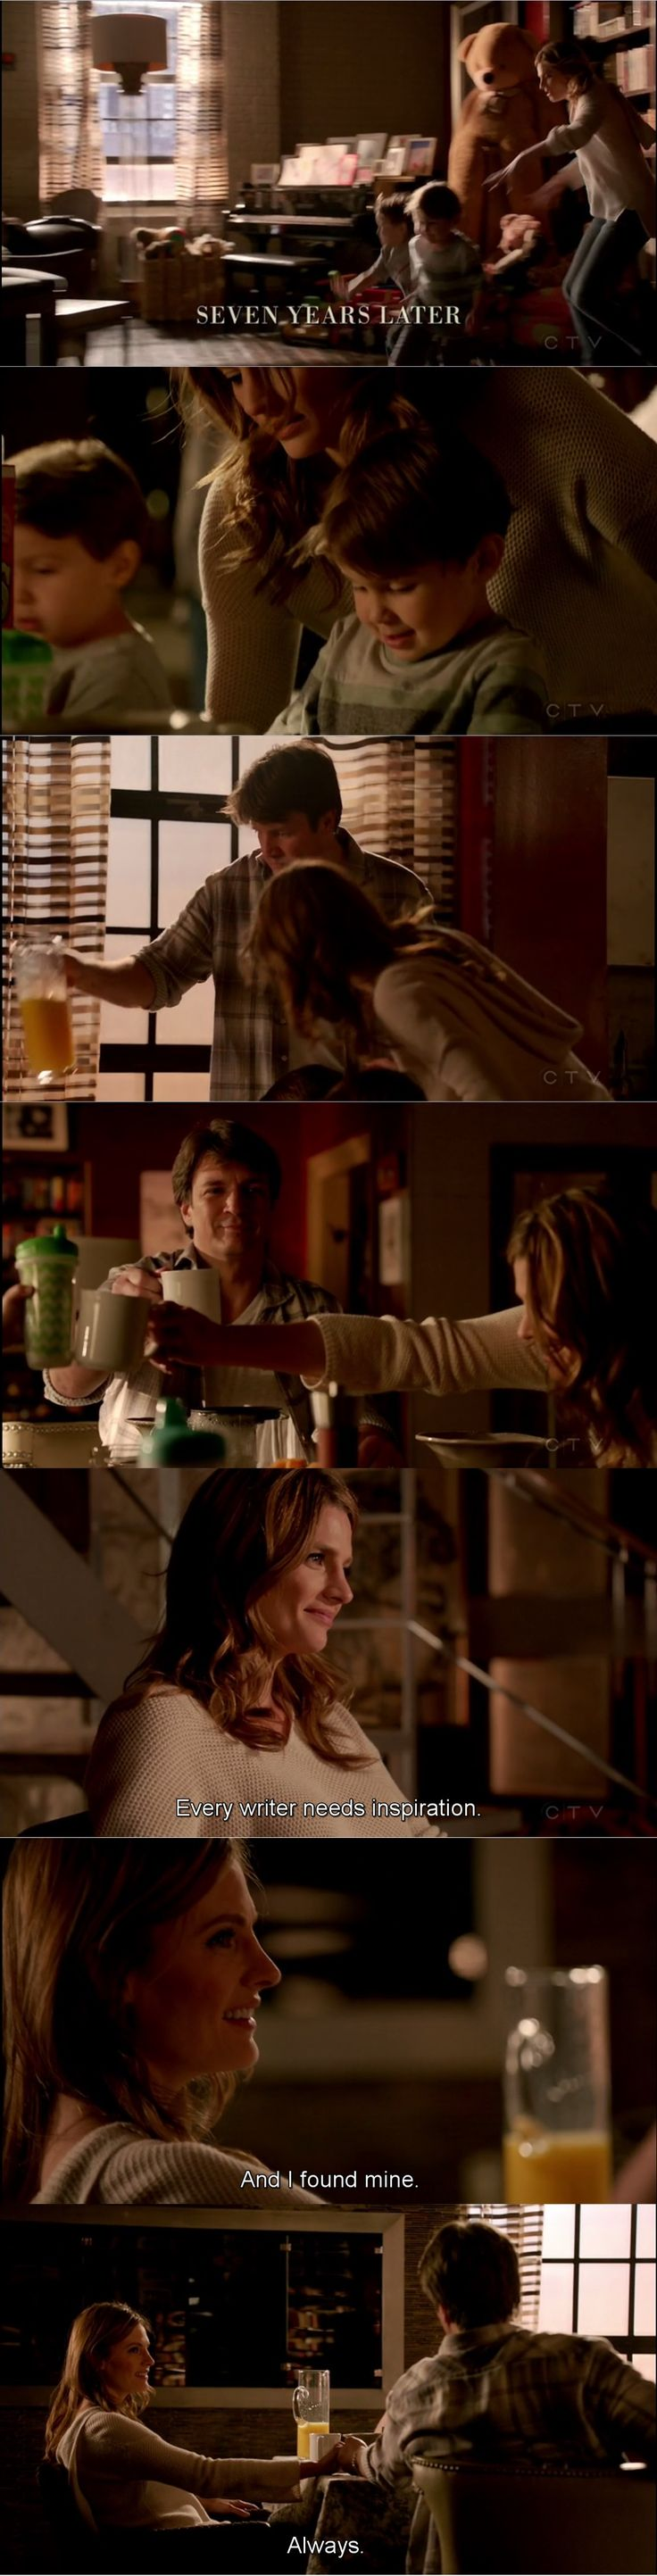 """Every writer needs inspiration. And I found mine. Always"" - Rick, Kate and the little Castles #Castle"